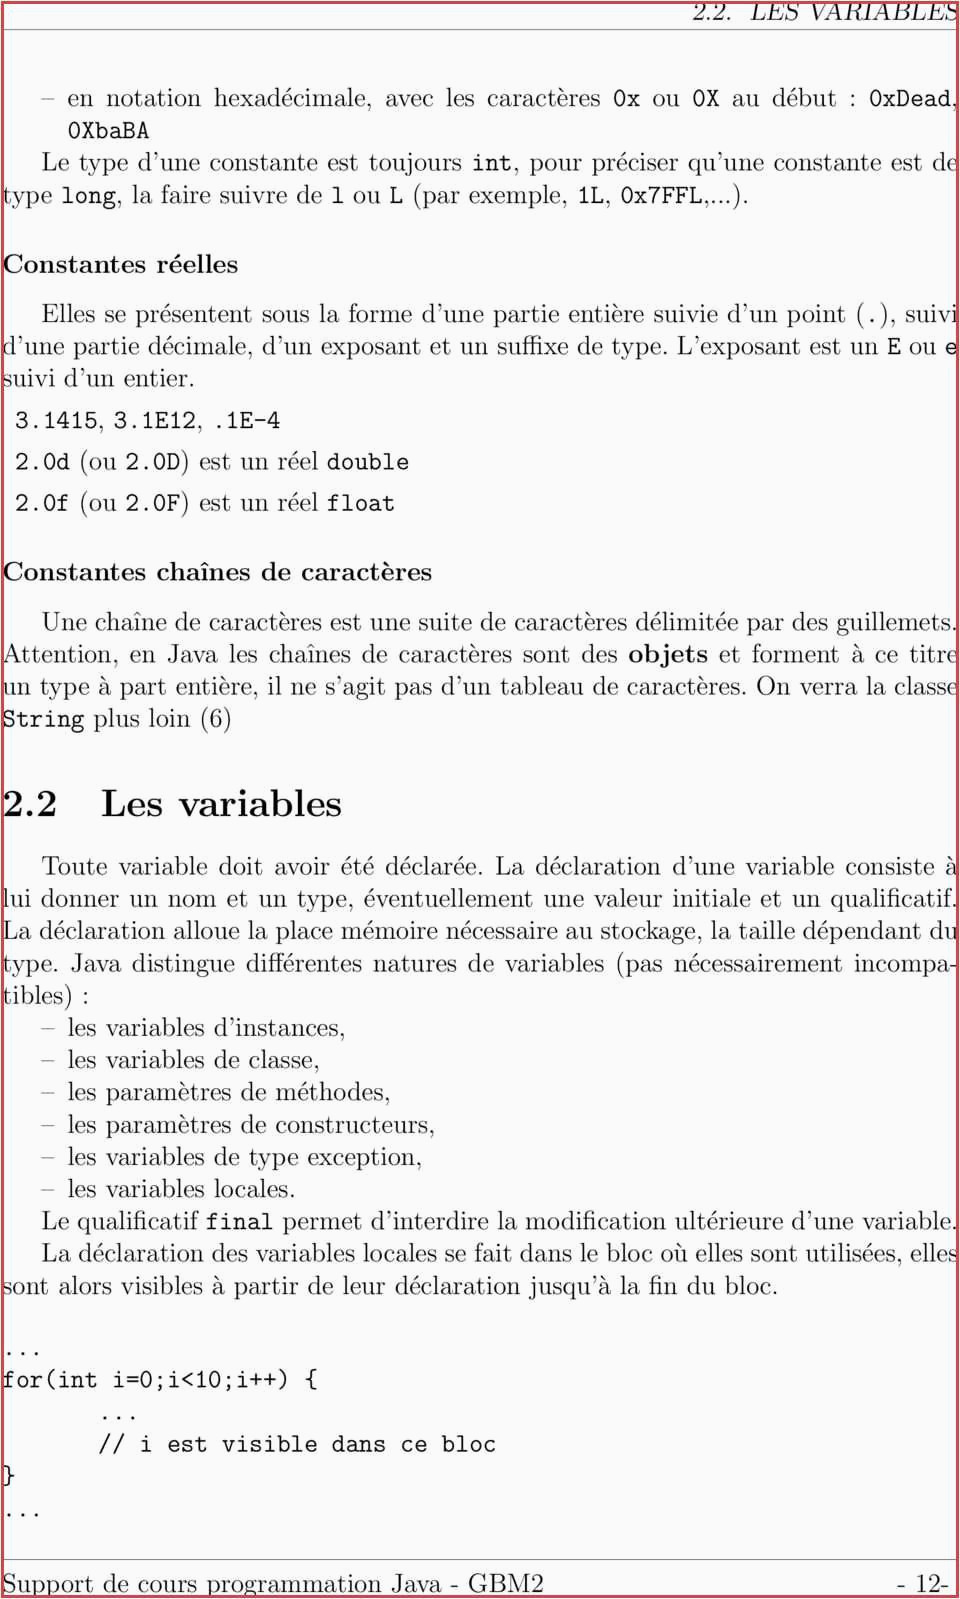 Lettre De Motivation Cariste 68 Exemple Lettre De Motivation Stage Seconde Bac Pro